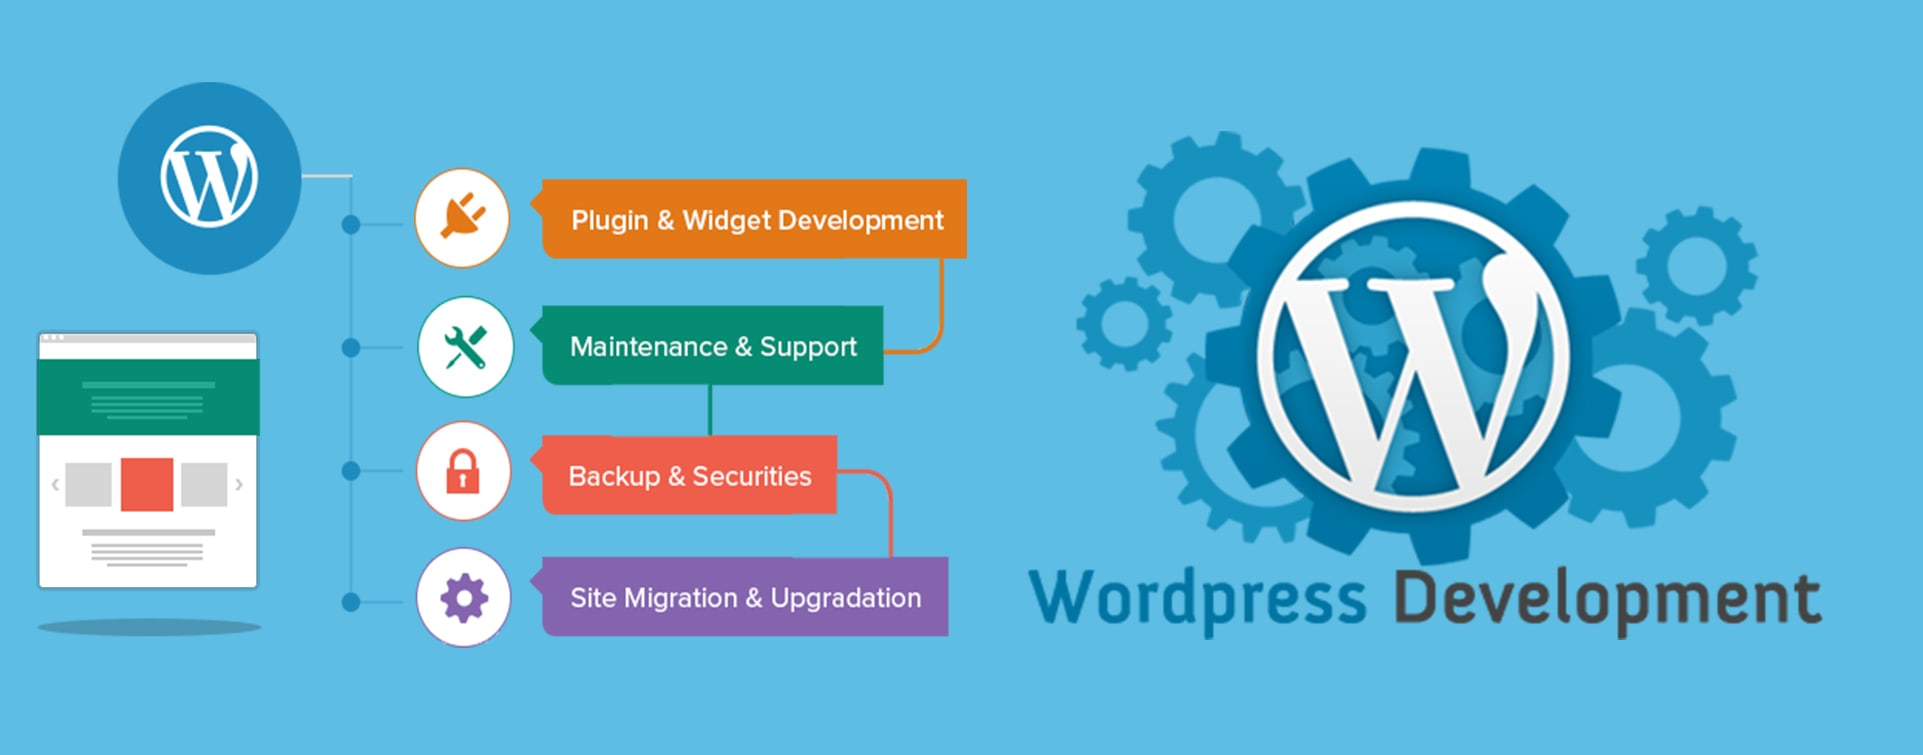 WordPress Development Lion Vision Technology